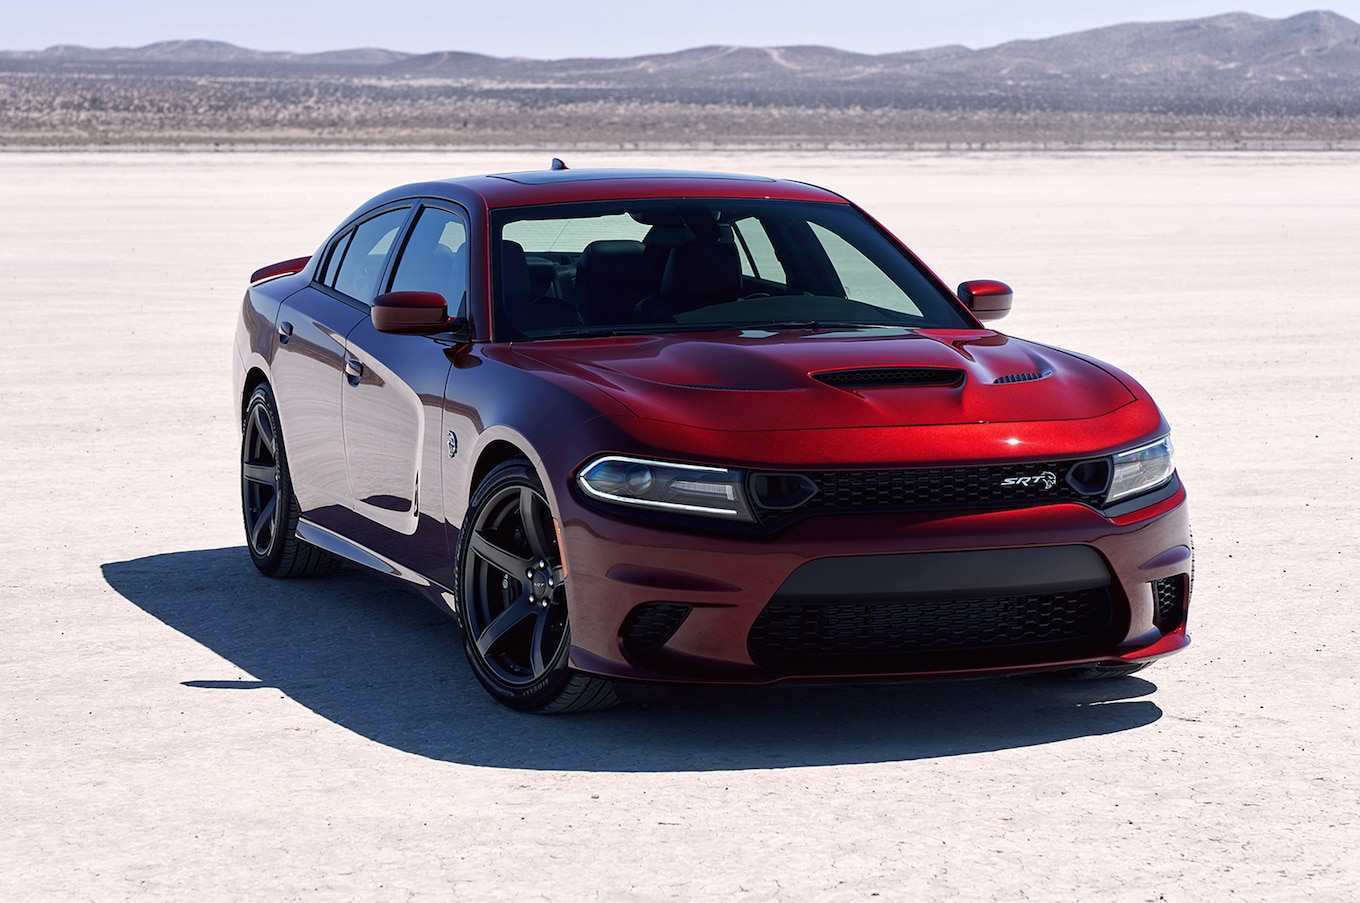 49 New Best Release Date For 2019 Dodge Charger Price And Review Overview for Best Release Date For 2019 Dodge Charger Price And Review